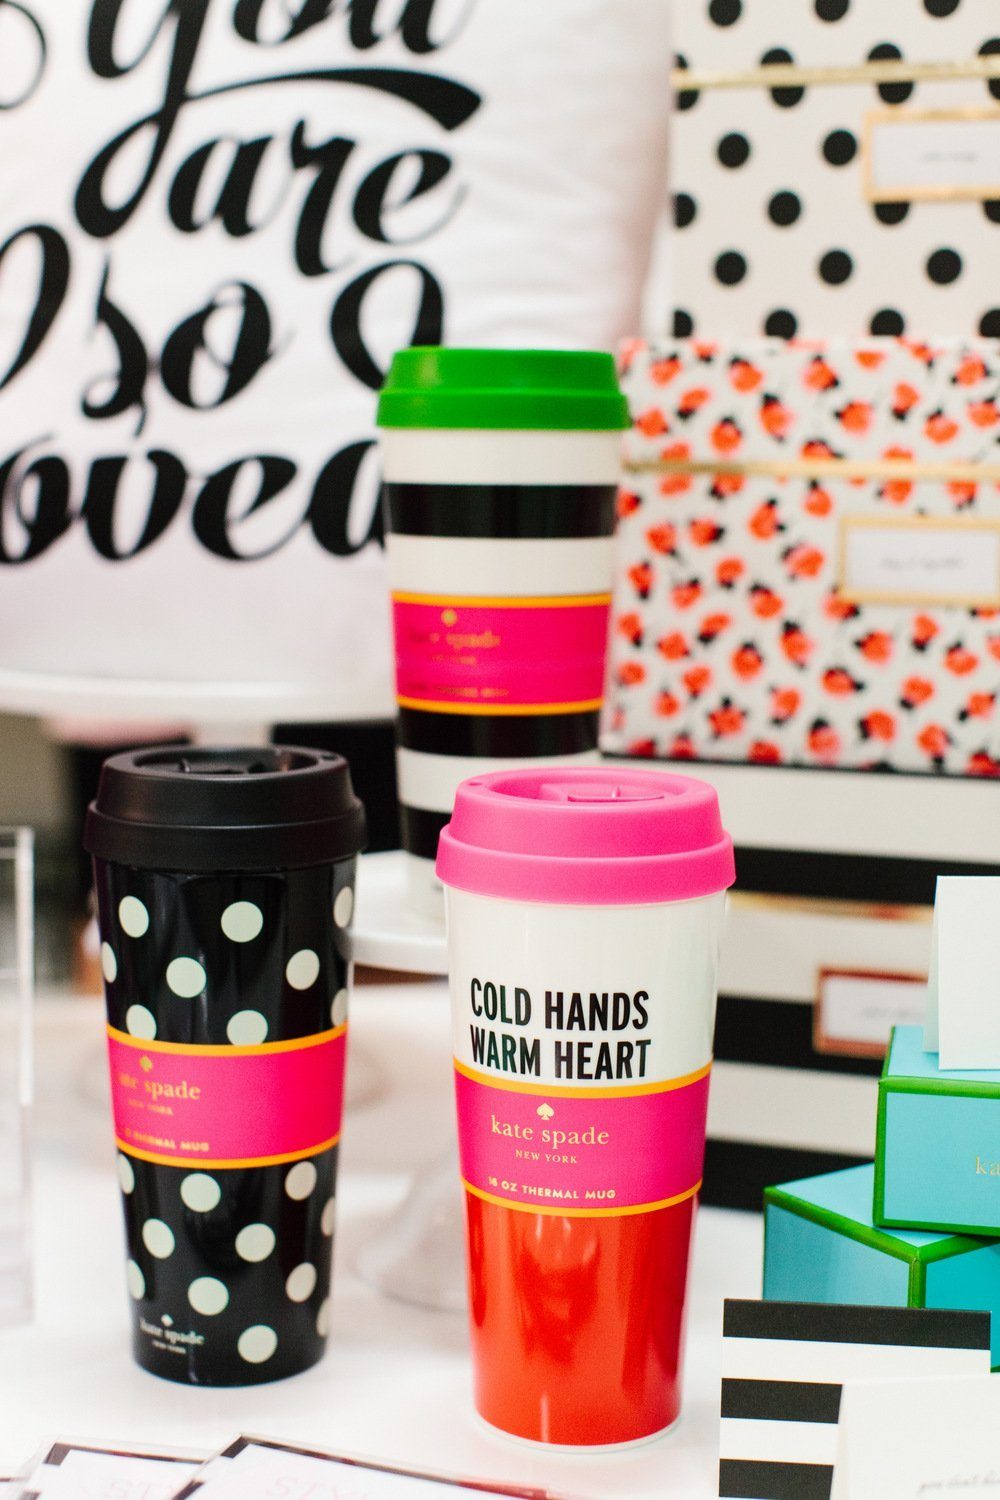 Image of: Cute Thermal Mugs Polka Dot